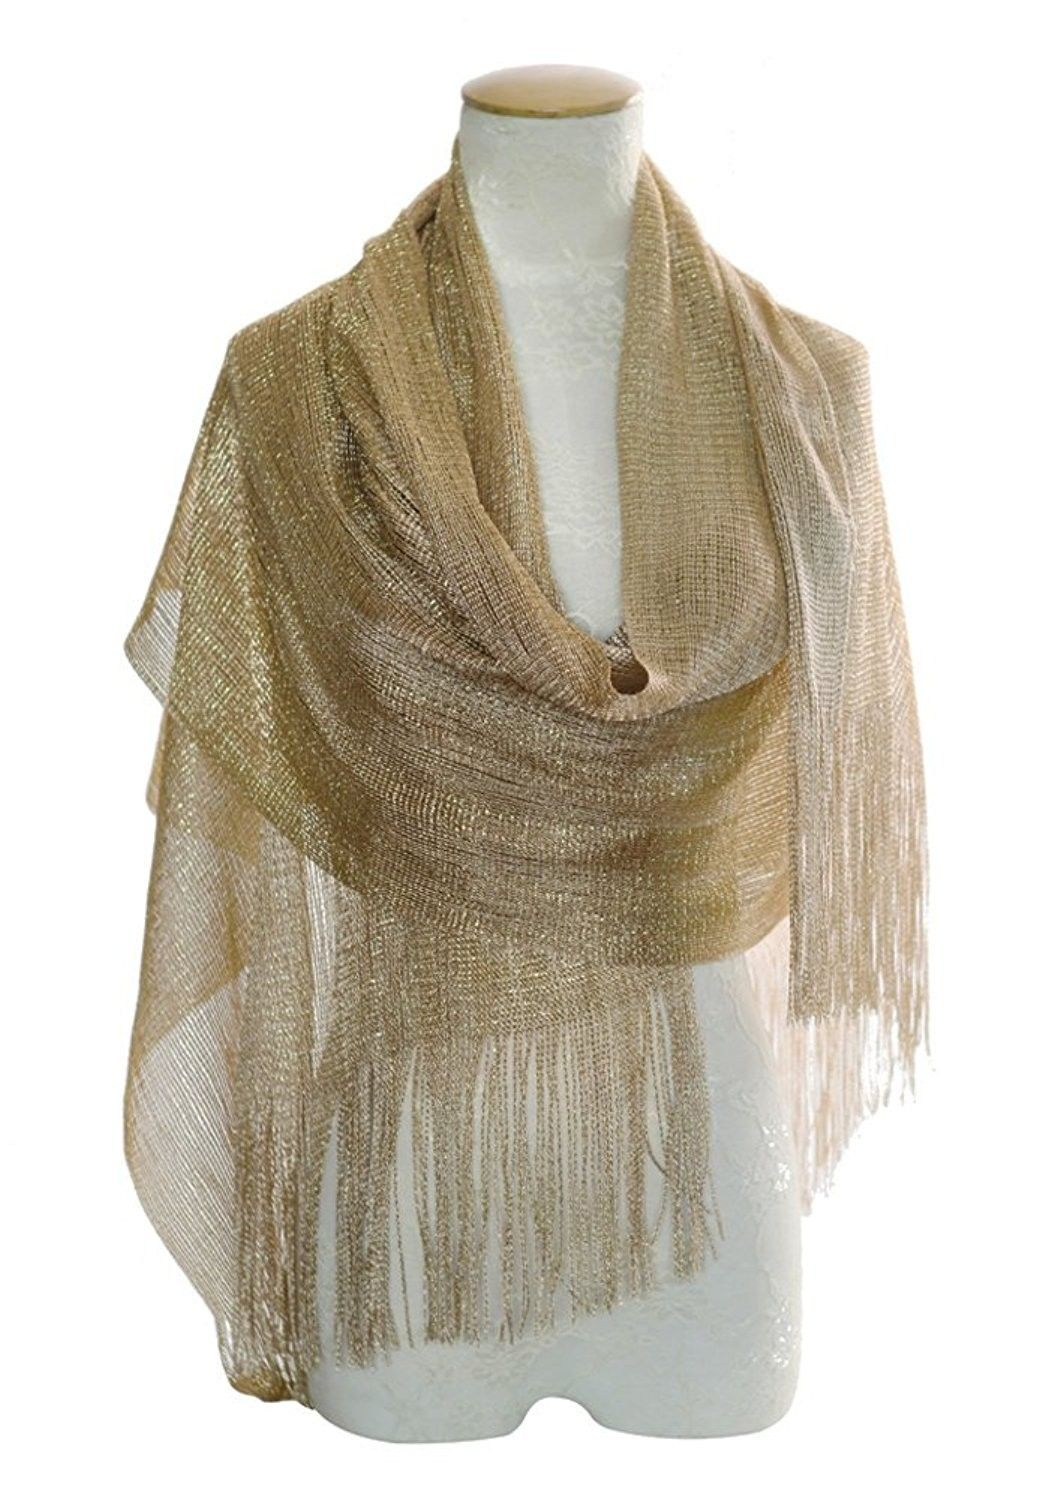 Wedding Evening Glitter Metallic 1 Metallic Champagne Gold Ca12n45vi5z Evening Scarf Shawls And Wraps Evening Wraps